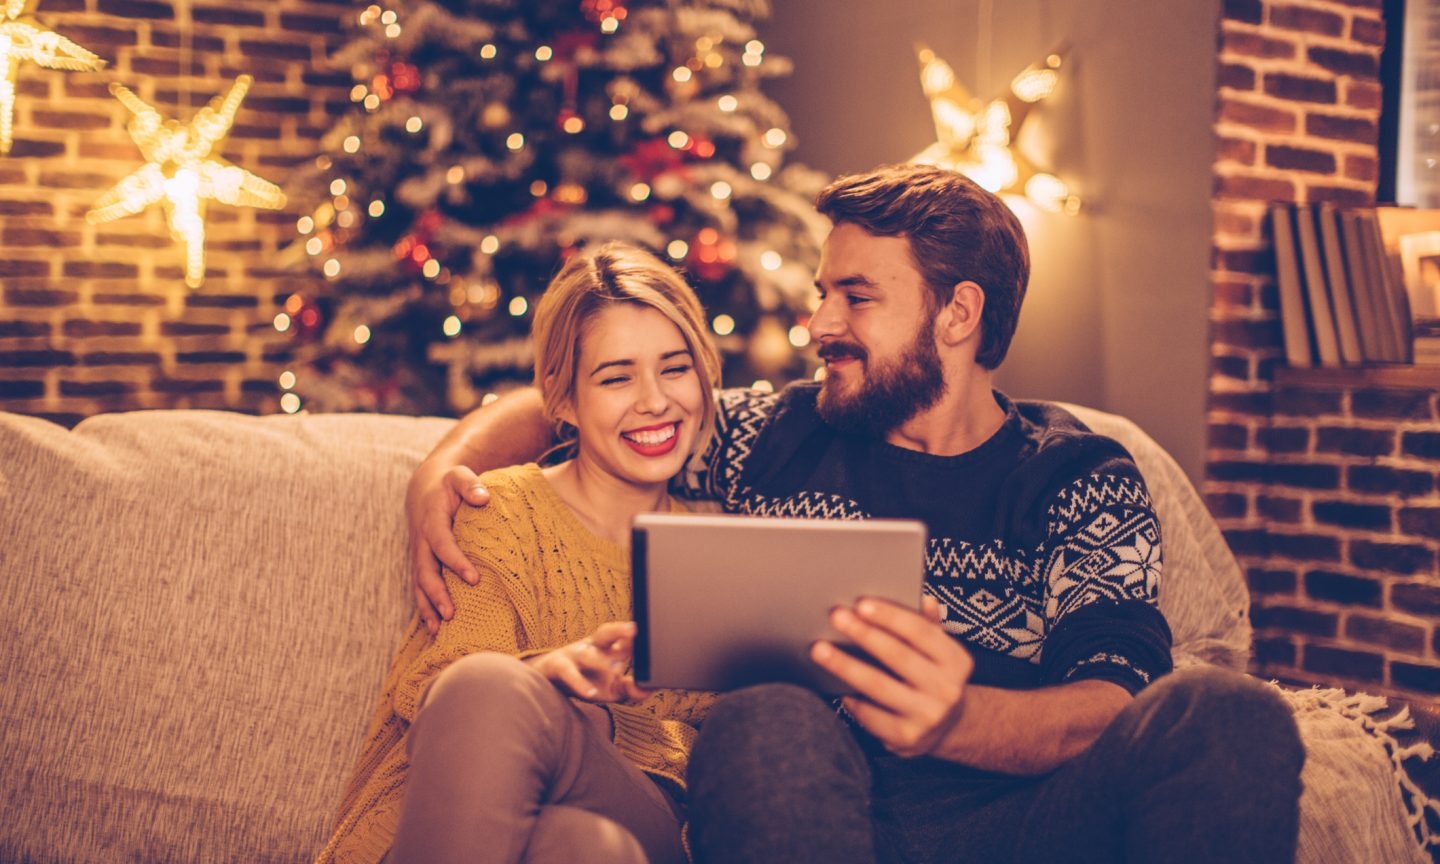 How to Celebrate the Holidays Without Travel - NerdWallet